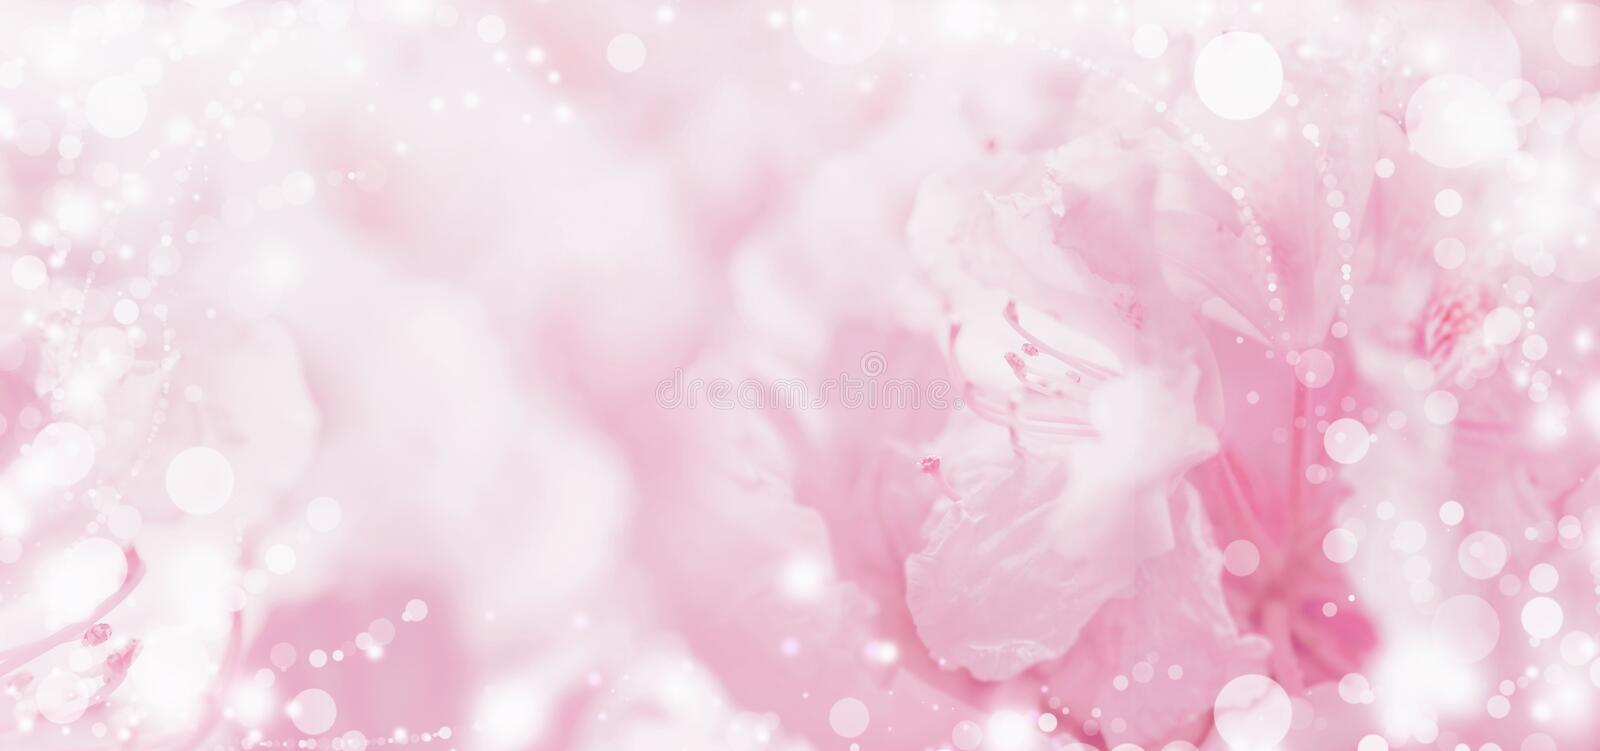 Beautiful pink pastel floral romantic background with light and bokeh royalty free stock photography